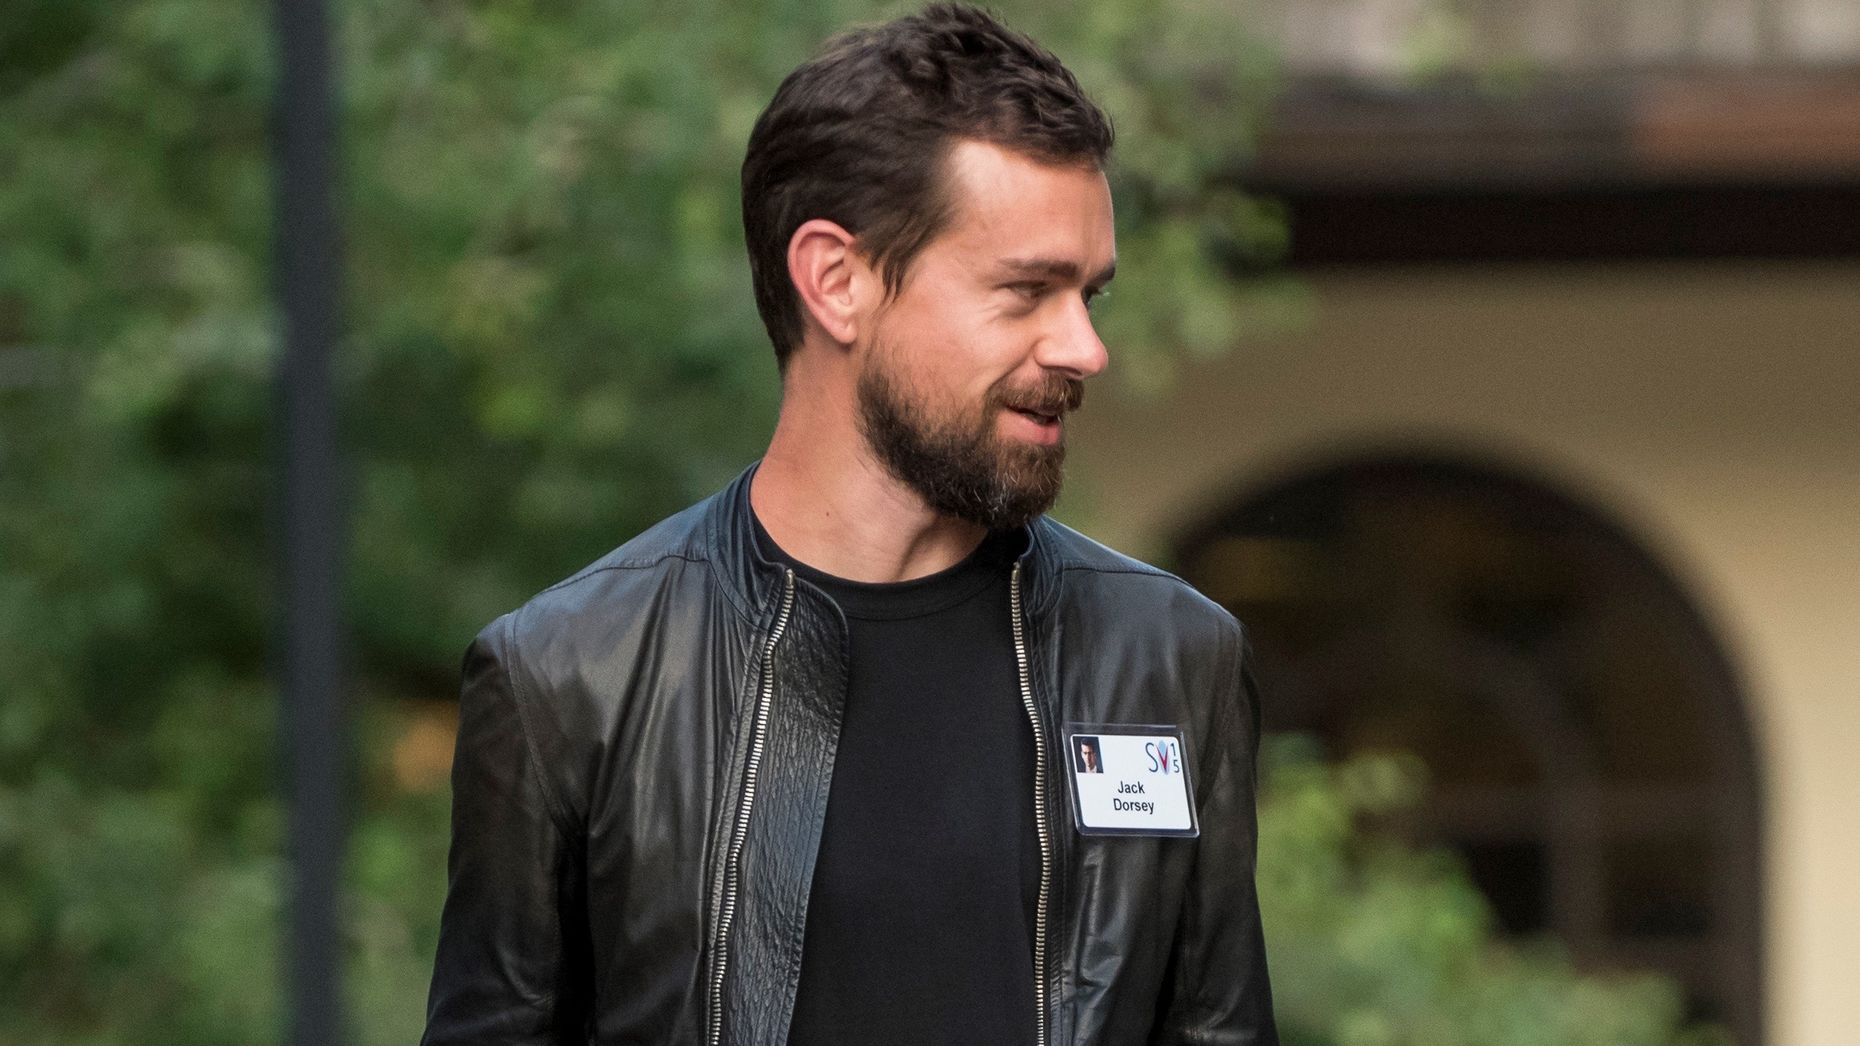 Jack Dorsey. Photo by Bloomberg.